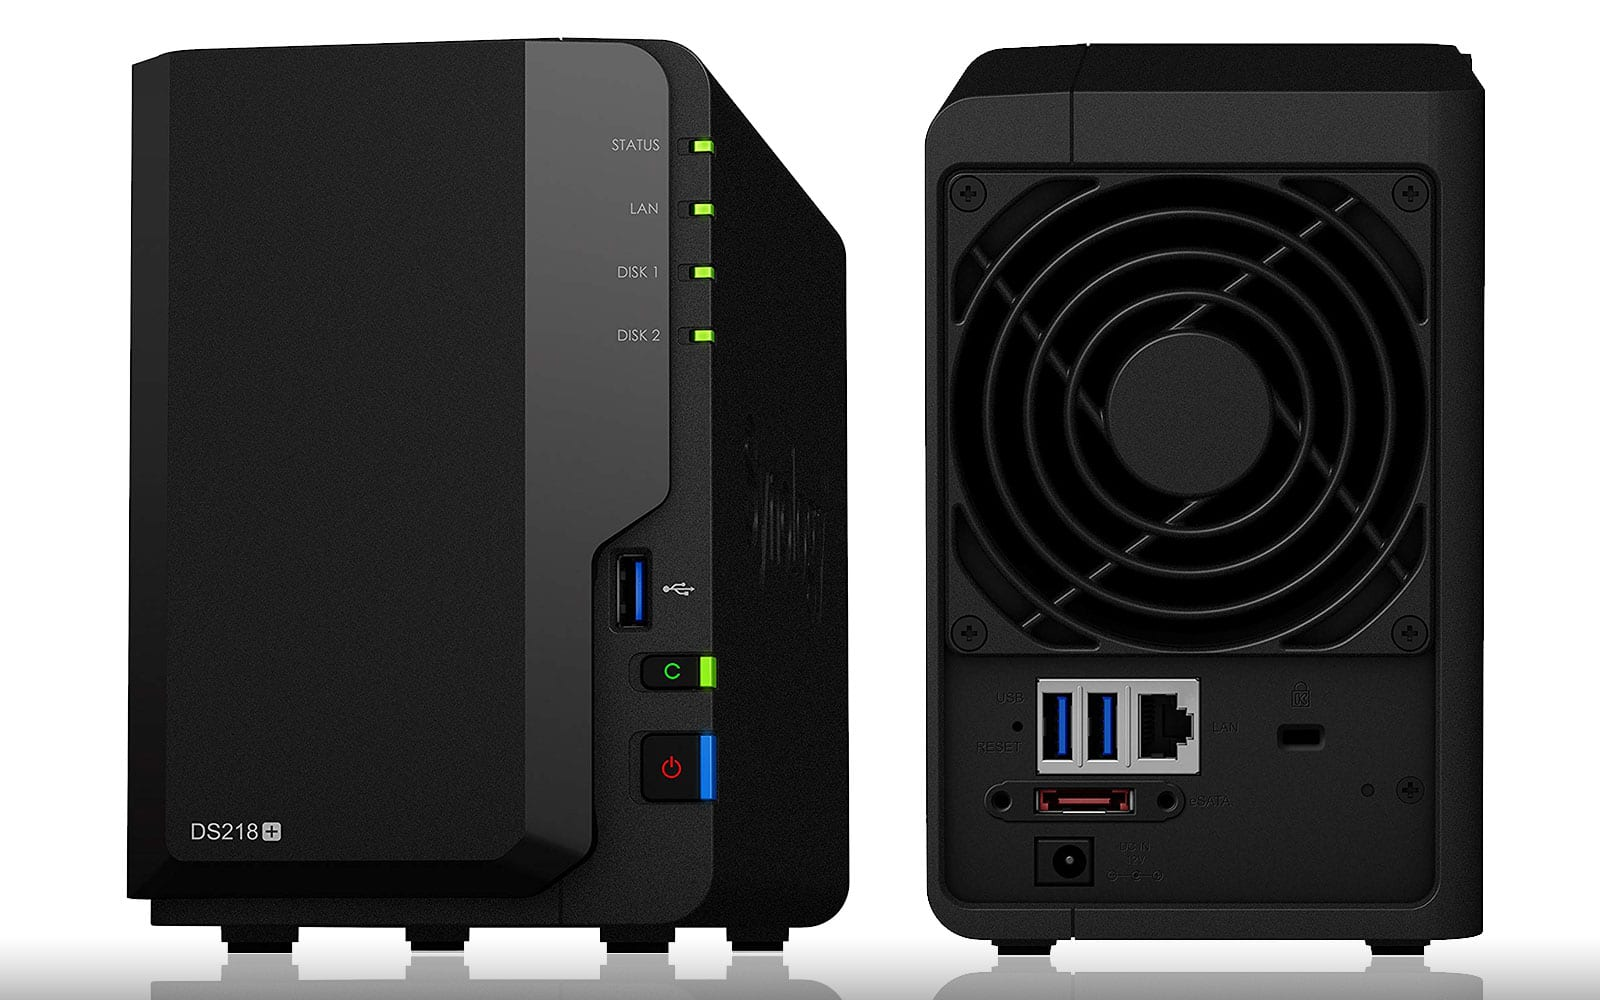 Engadget giveaway: Win a DiskStation DS218+ NAS courtesy of Synology!